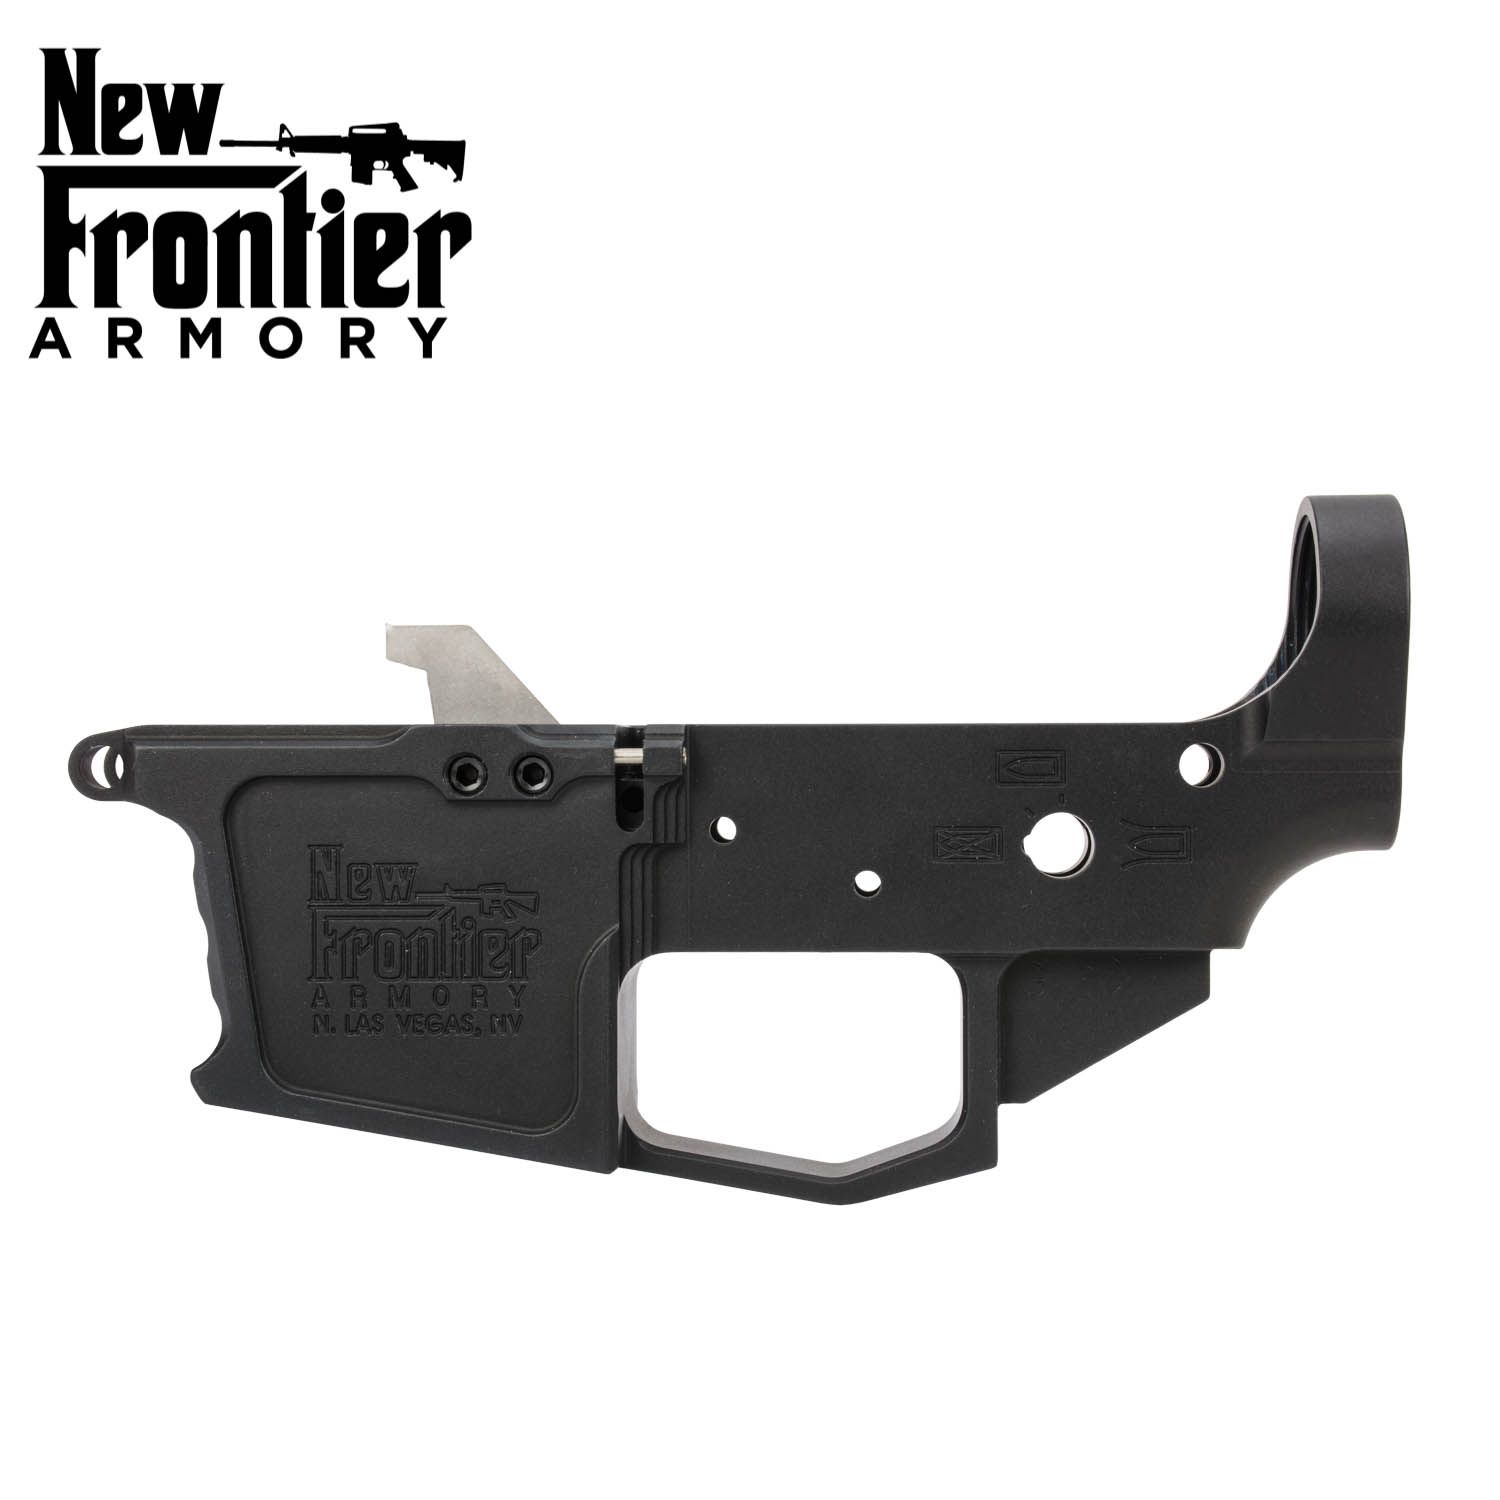 New Frontier Armory AR-9 / 40 Stripped Billet Lower, Glock Style Magazines,  Black: Midwest Gun Works